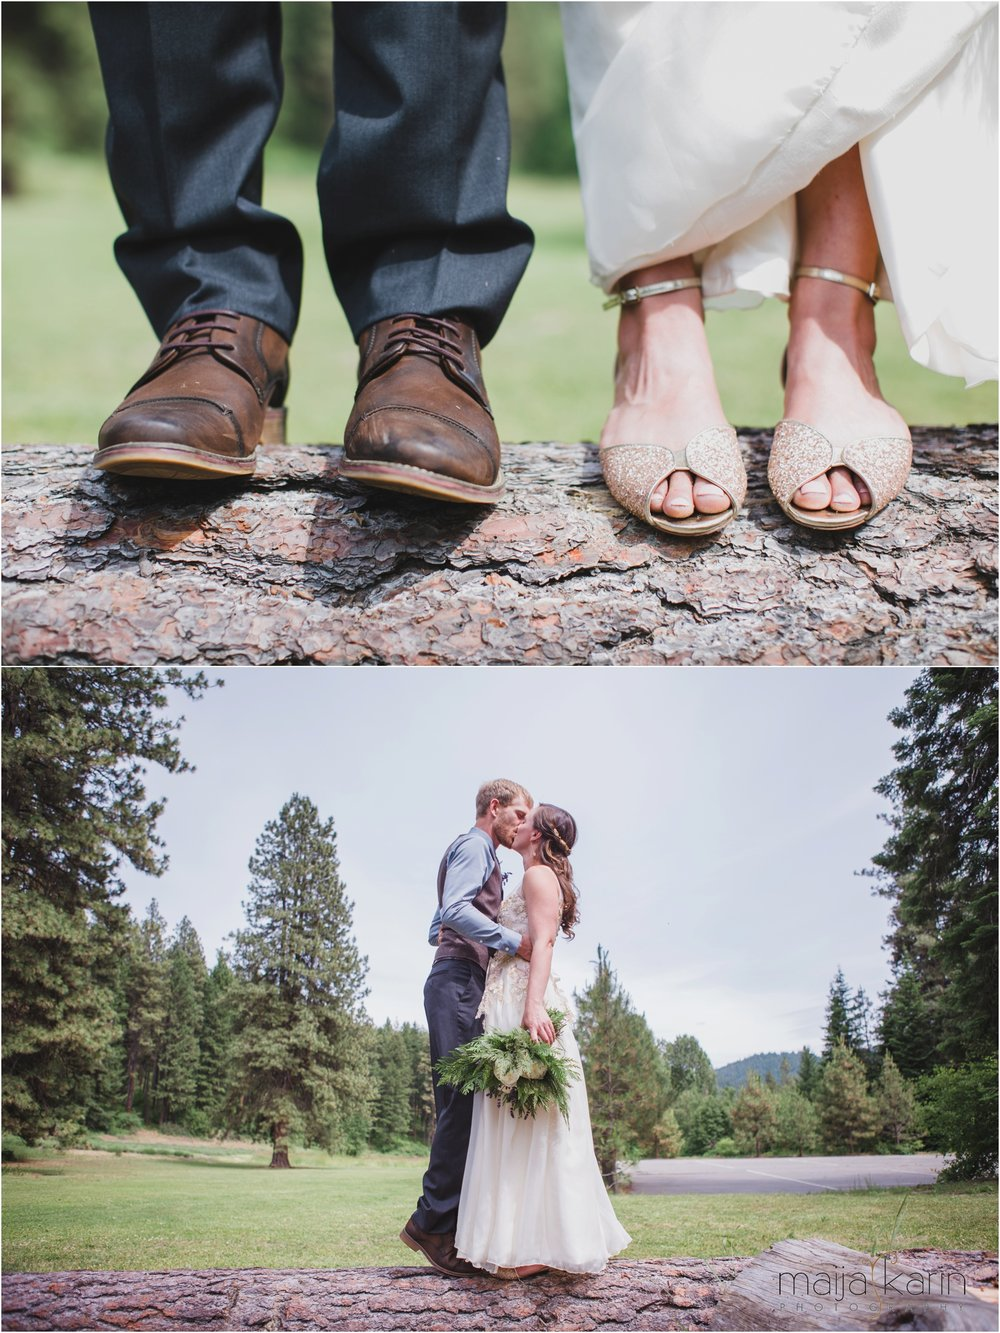 _0039Tierra-Learning-Center-Leavenworth-Washington-Wedding-Photographer-Maija-Karin-photography.jpg